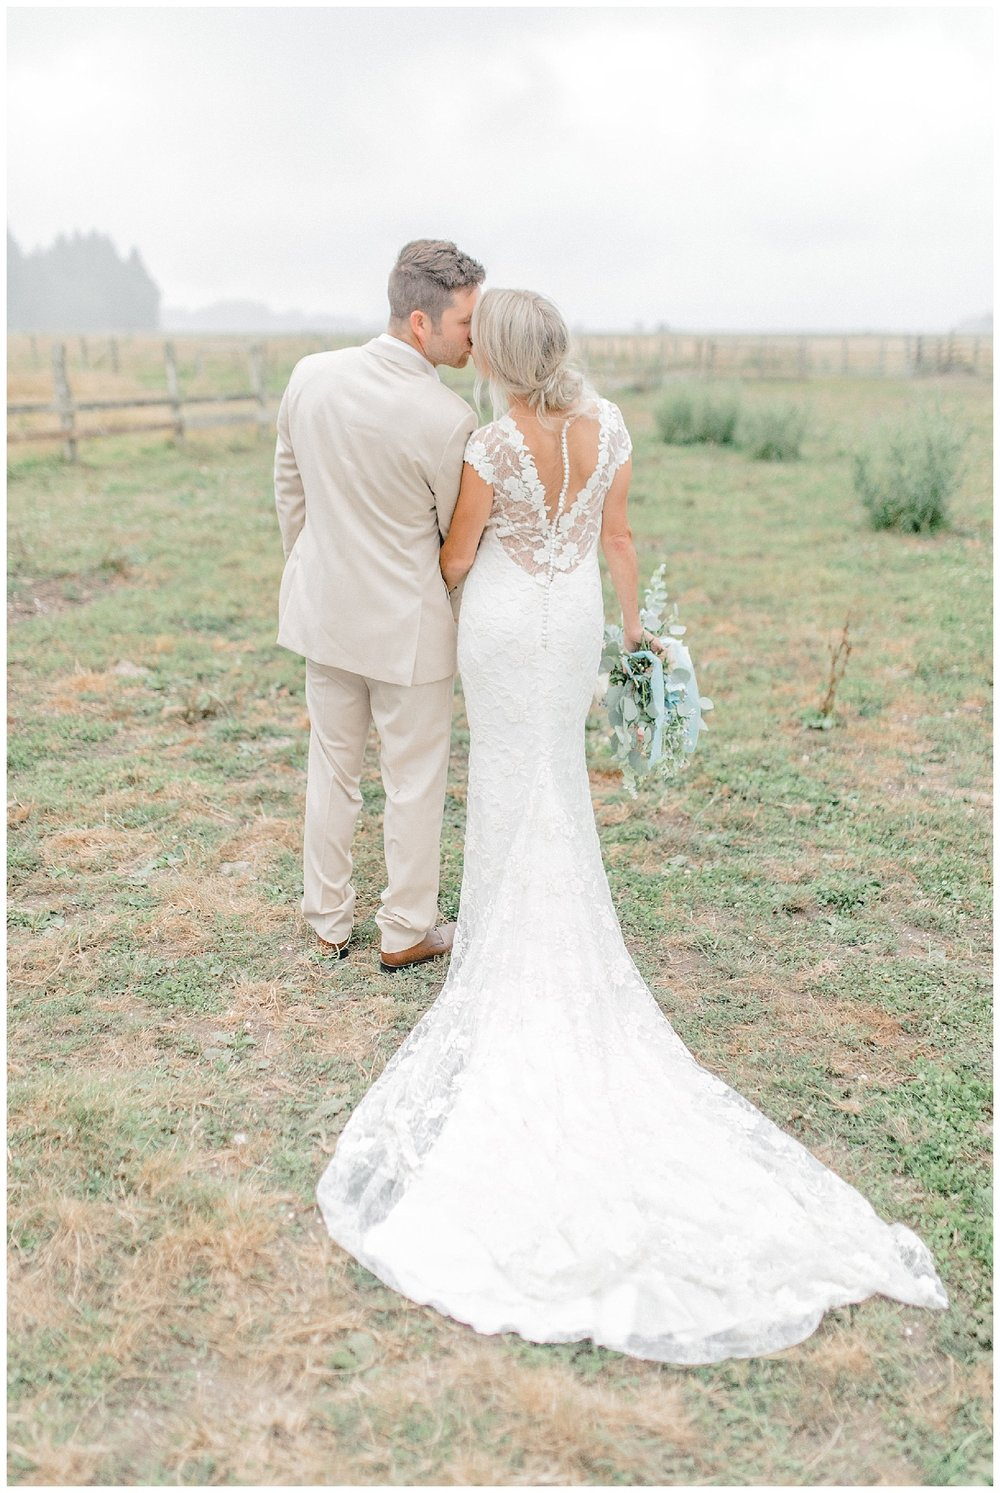 Emma Rose Company Dream Chasers Workshop and Education for Photographer | Light and Airy Rose Ranch Dream Barn Venue Wedding_0027.jpg